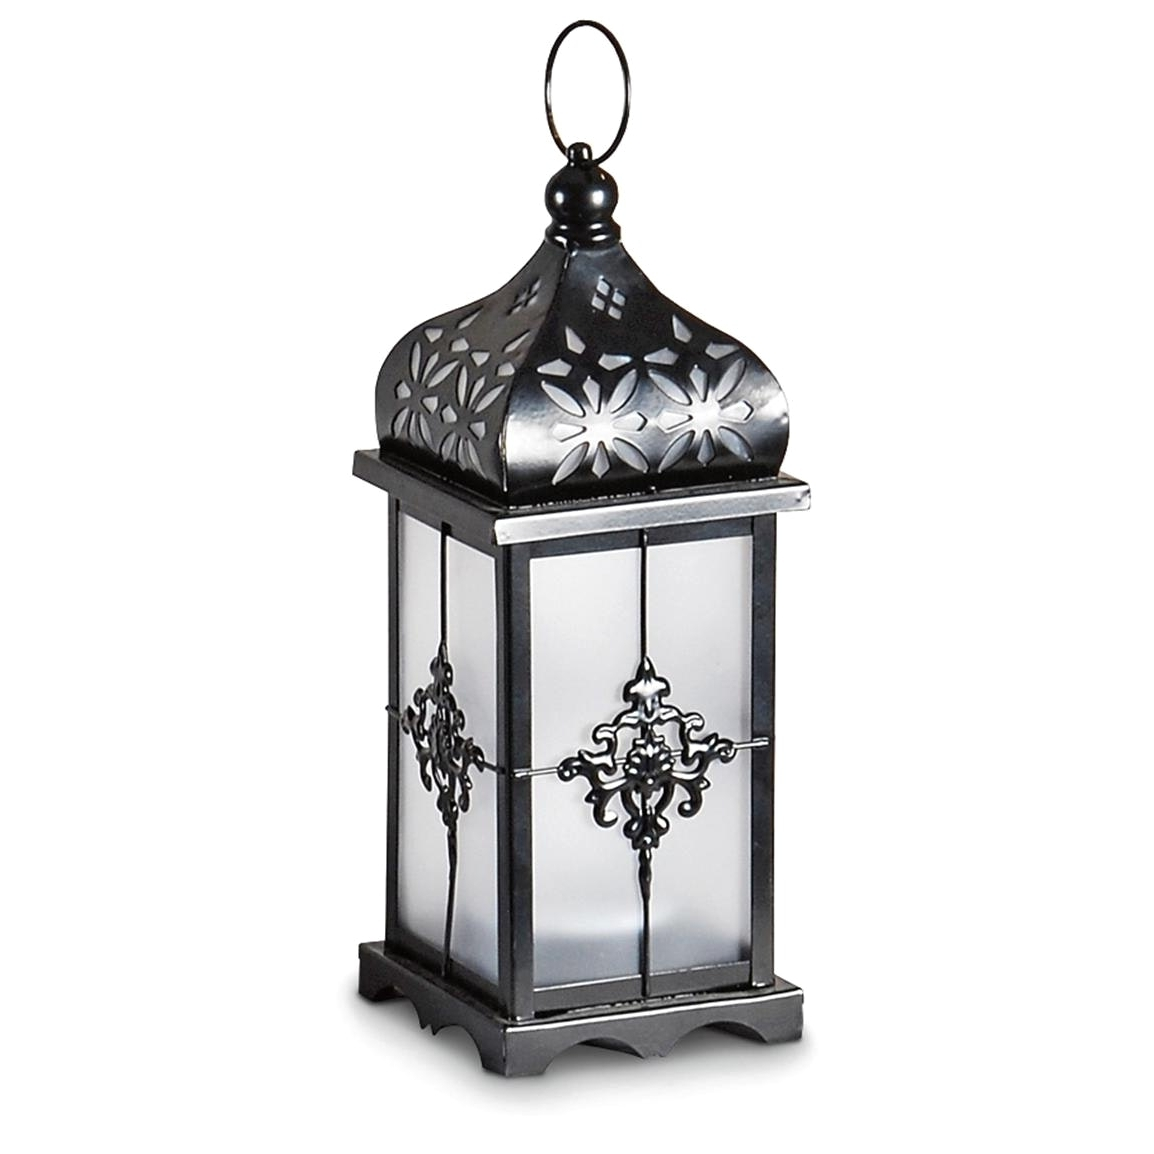 2019 Led Outdoor Hanging Lanterns With Solar Powered Outdoor Hanging Light And Decoration Decorative (View 14 of 20)